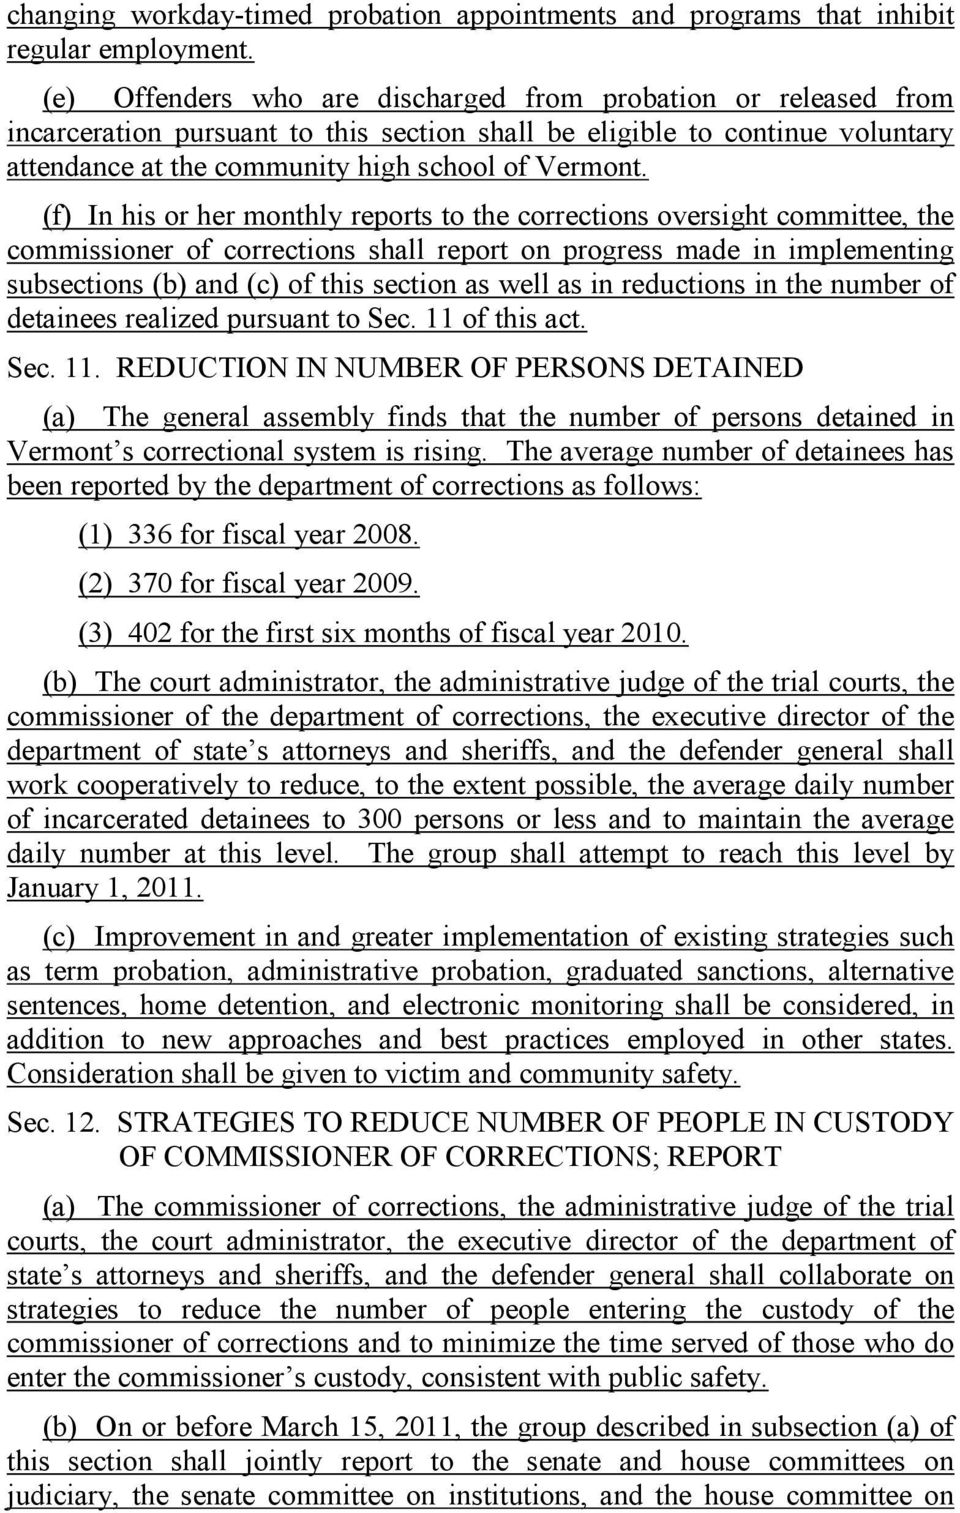 (f) In his or her monthly reports to the corrections oversight committee, the commissioner of corrections shall report on progress made in implementing subsections (b) and (c) of this section as well